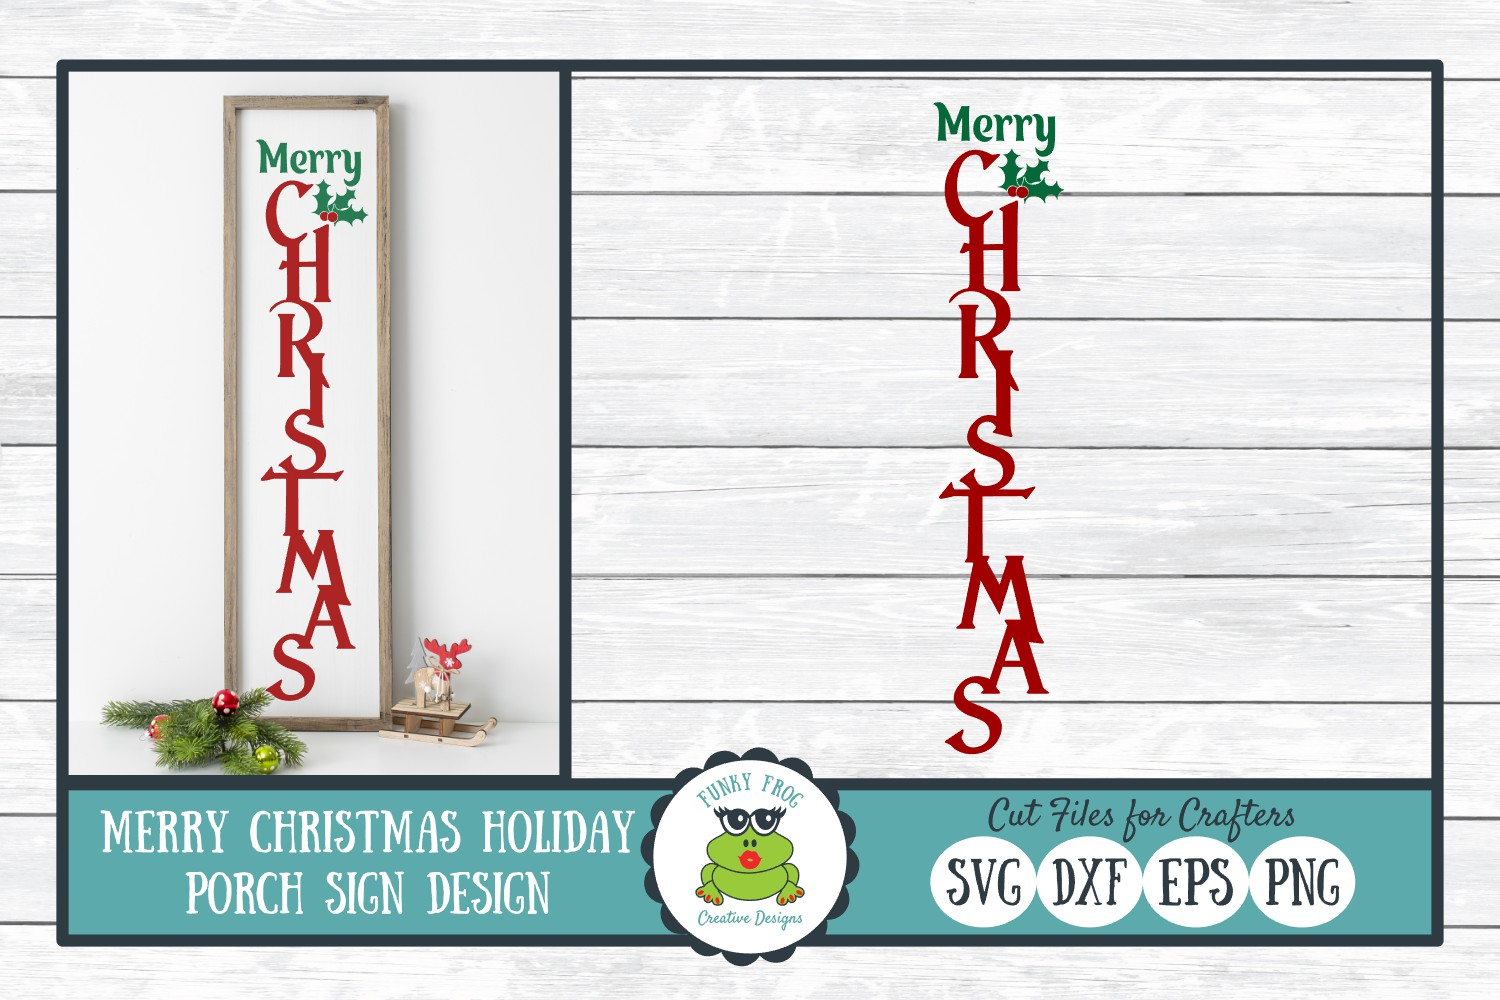 Merry Christmas Porch Sign Design Graphic By